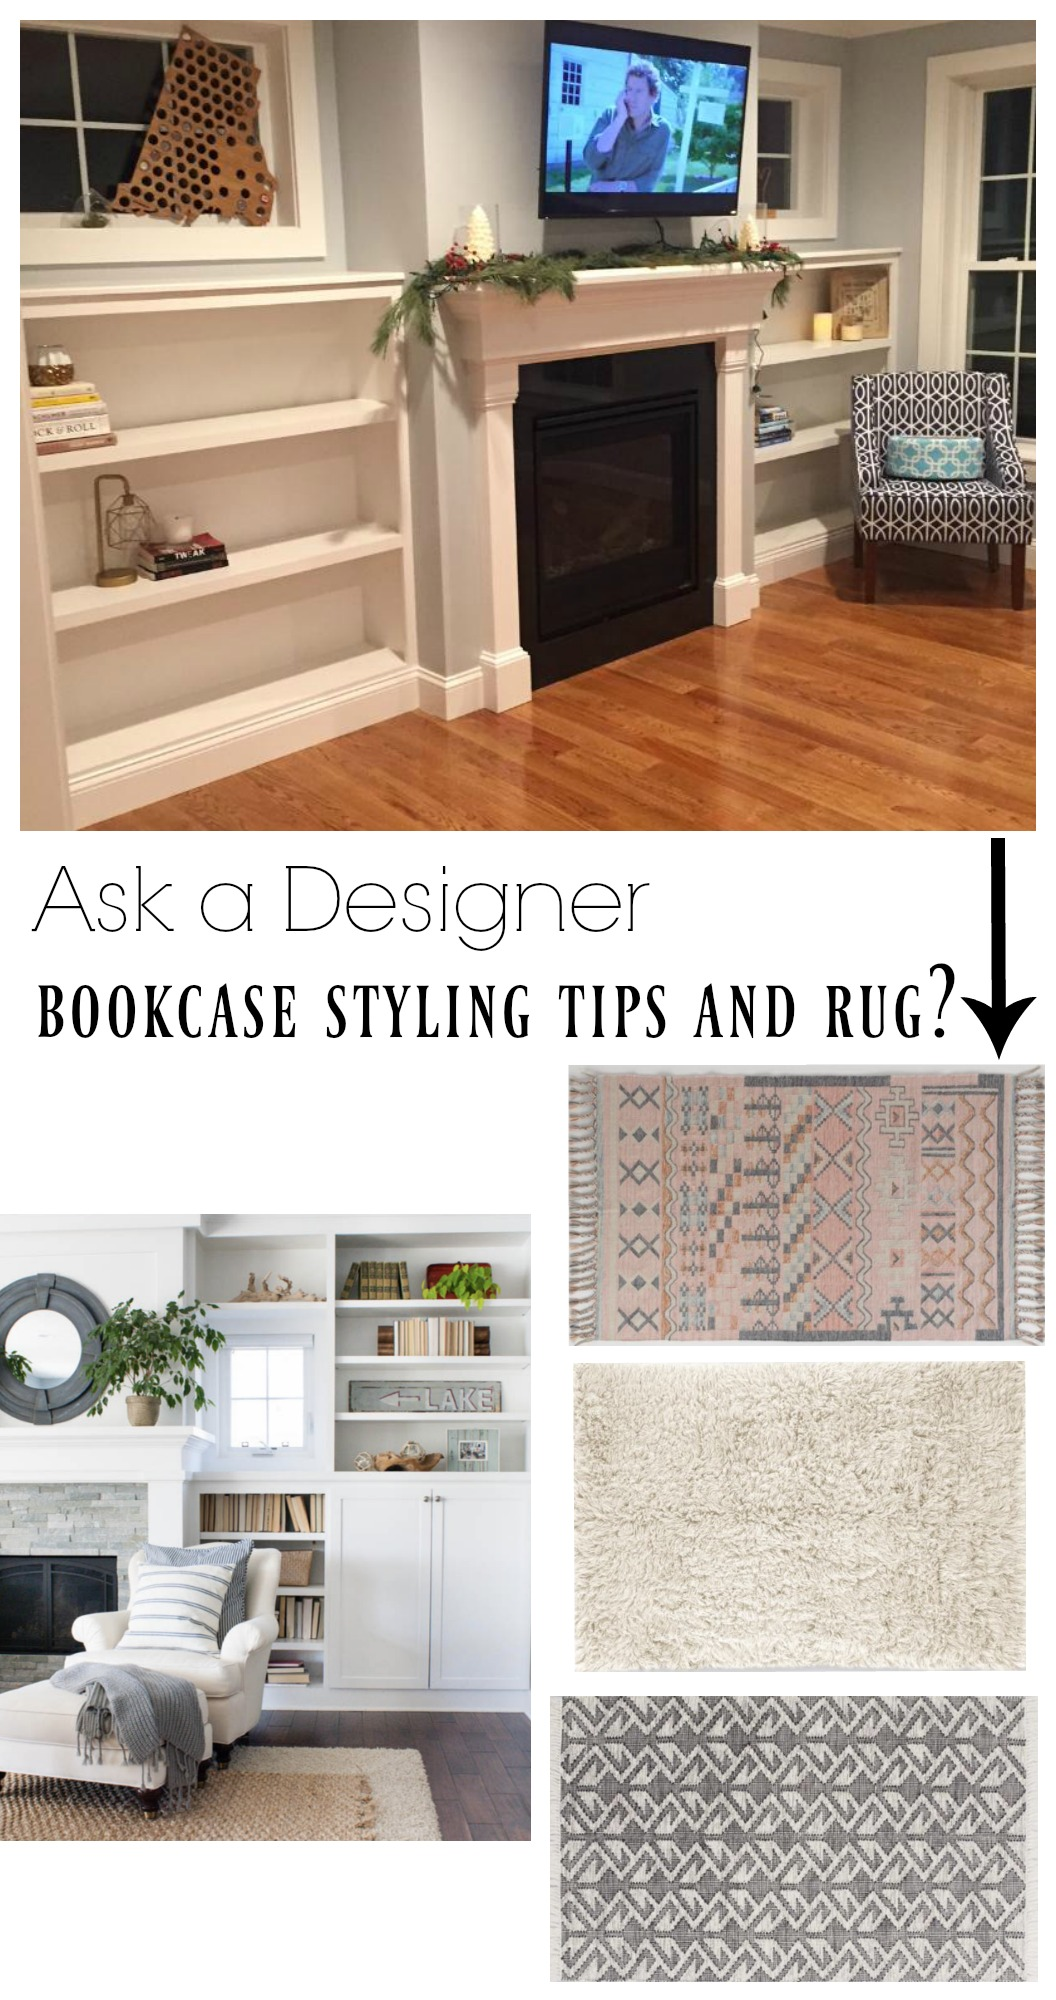 Ask a Designer- Bookcase Styling Tips and Rug Suggestions